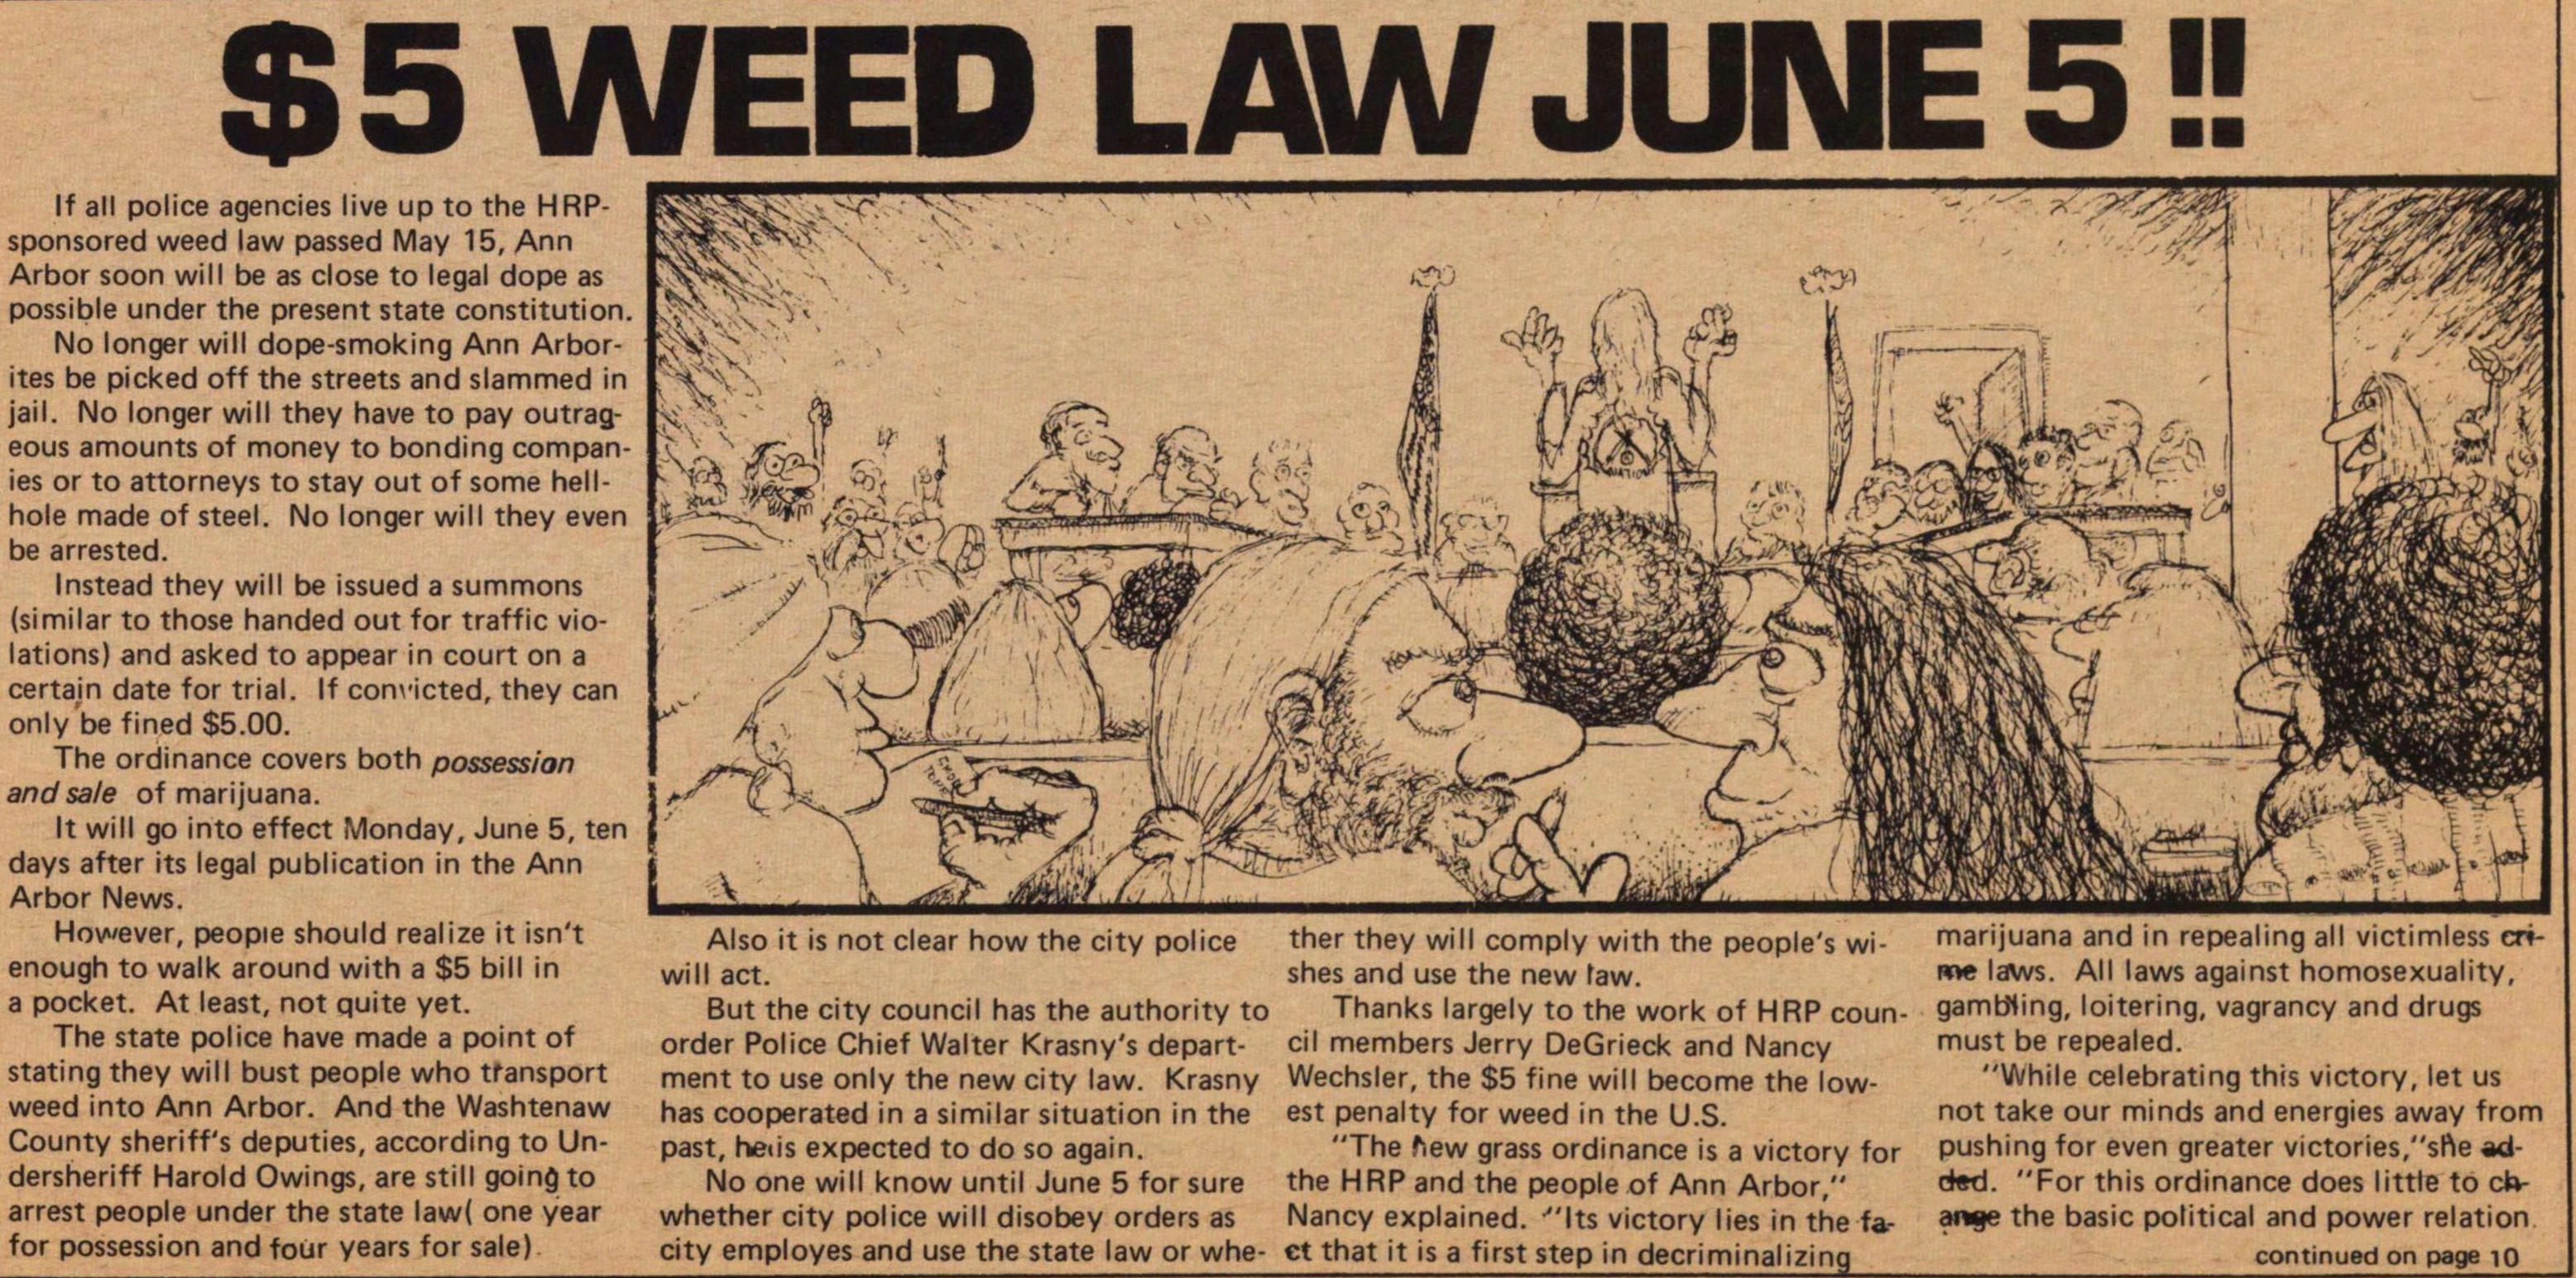 $5 Weed Law June 5!! image